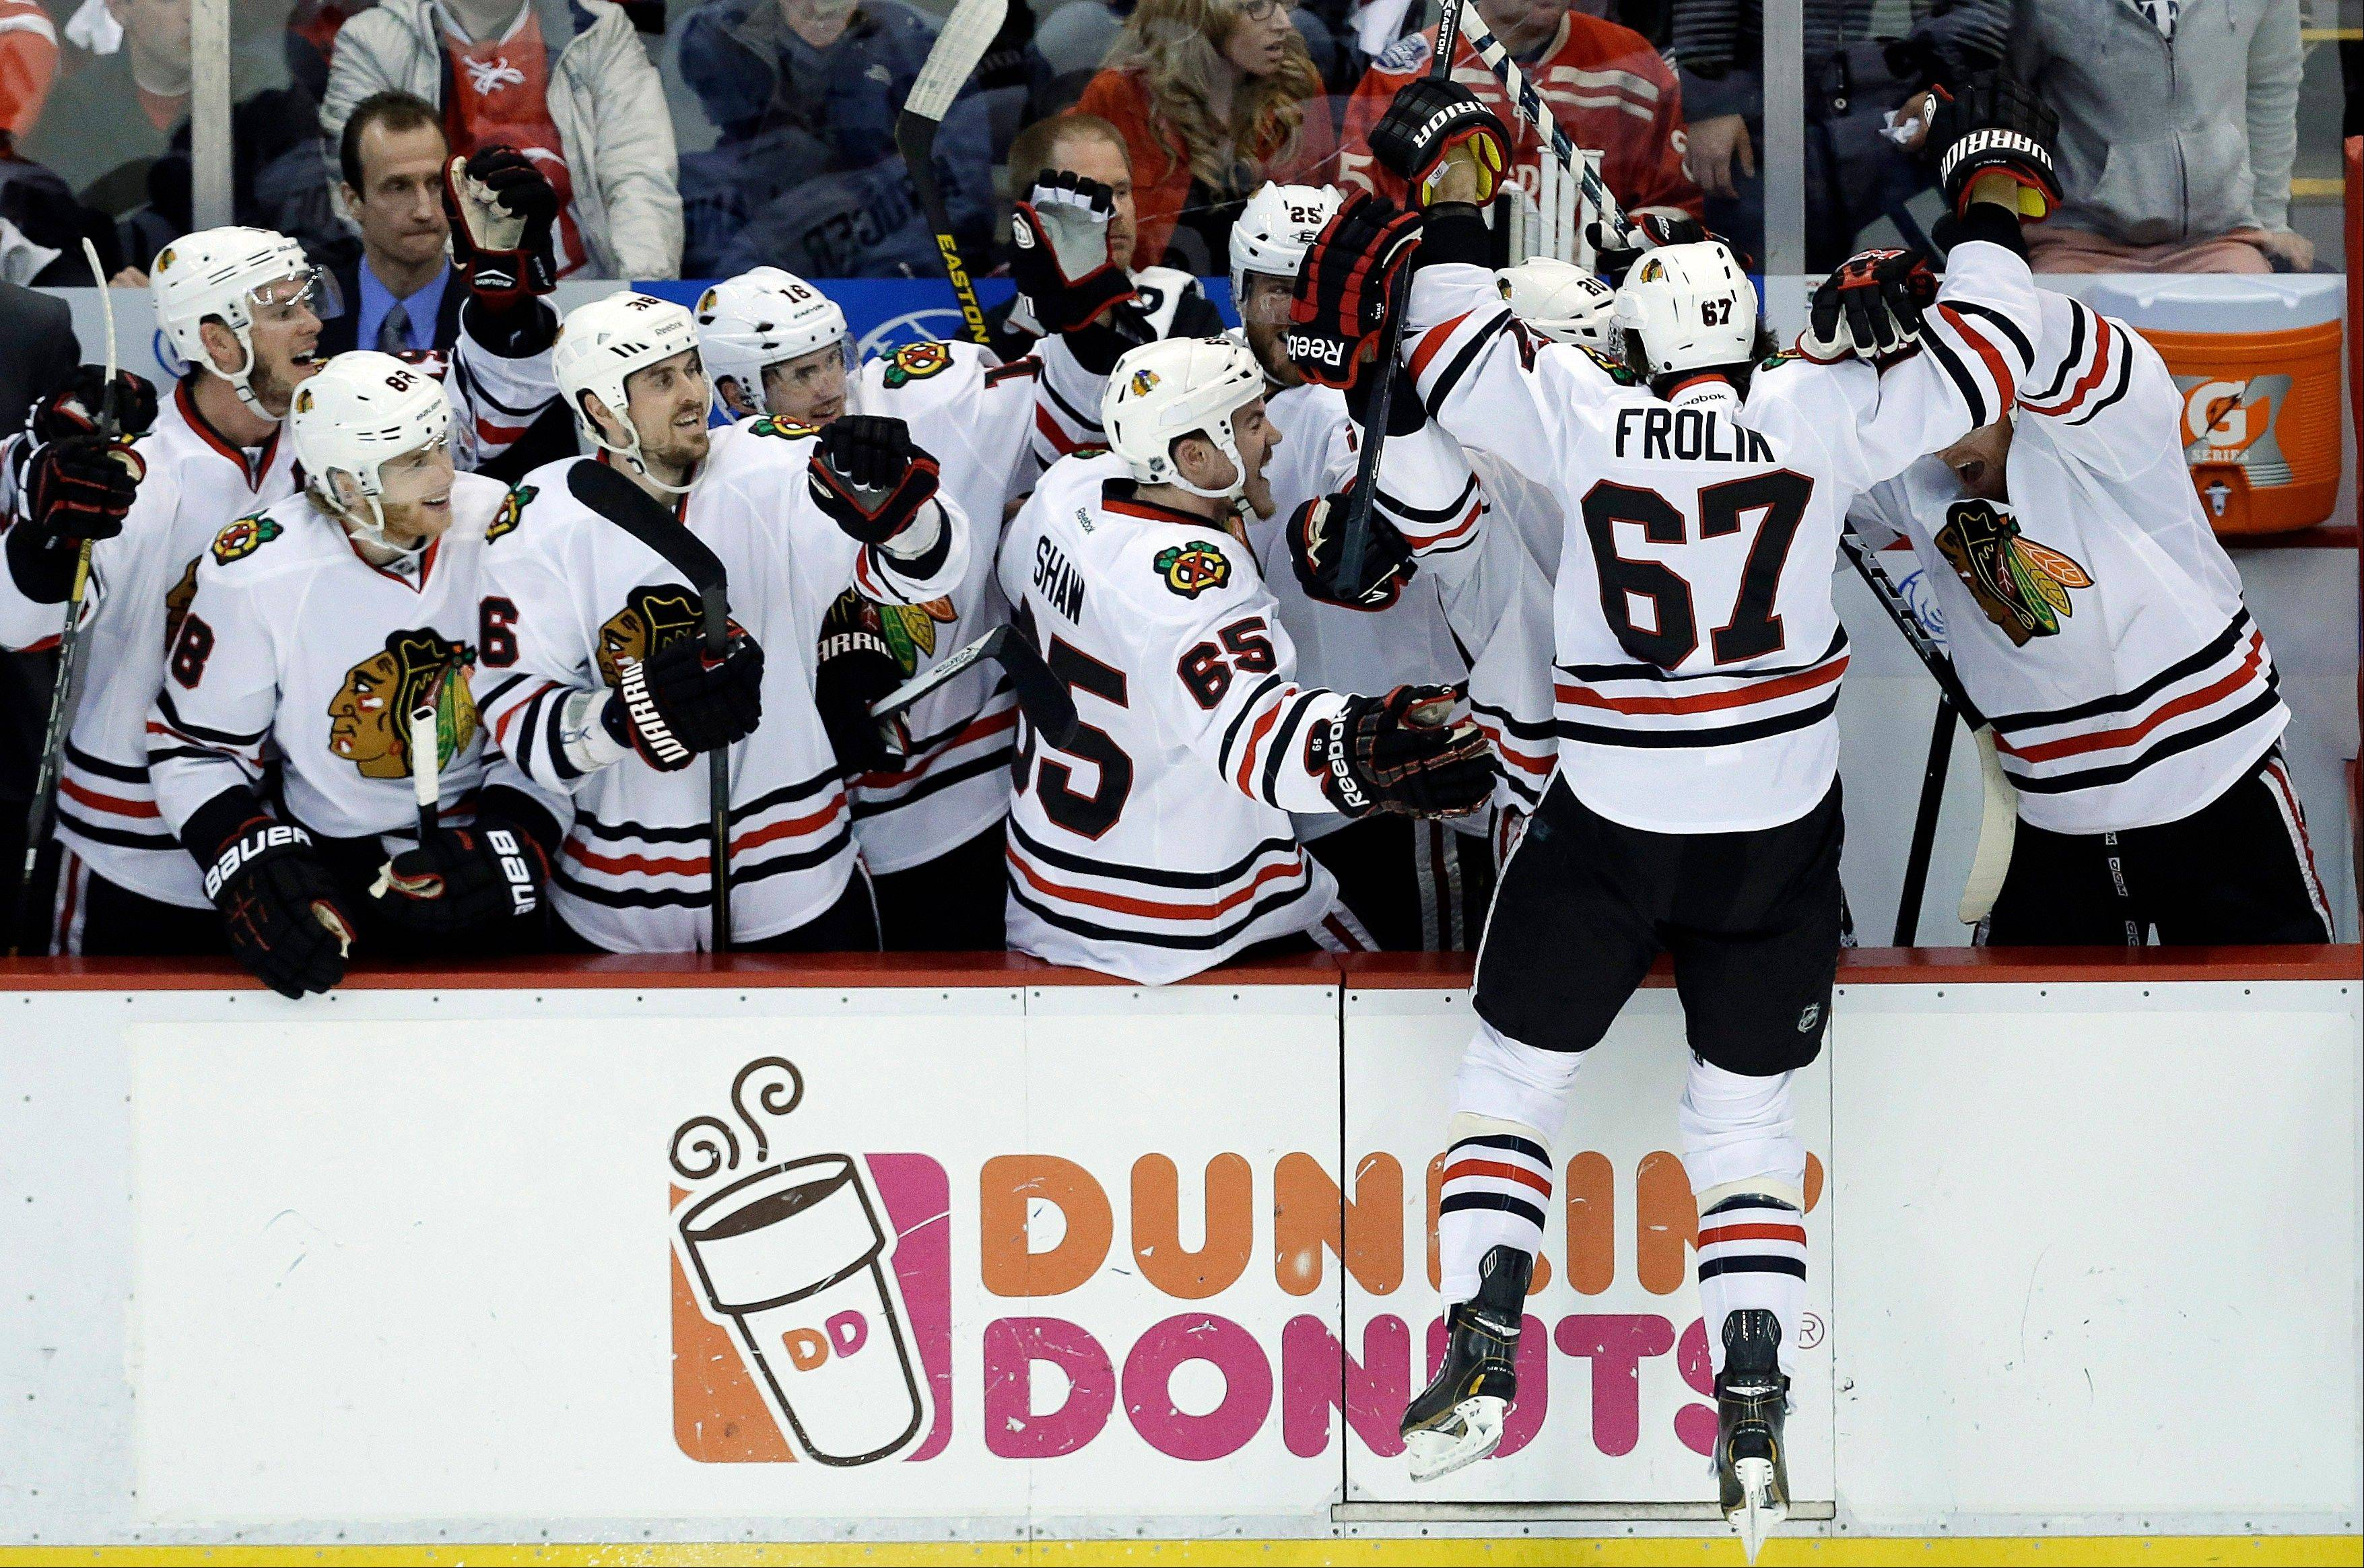 Chicago Blackhawks center Michael Frolik (67), of the Czech Republic, celebrates scoring a penalty shot goal against the Detroit Red Wings goalie Jimmy Howard during the third period in Game 6 of the Western Conference semifinals in the NHL hockey Stanley Cup playoffs in Detroit, Monday, May 27, 2013.